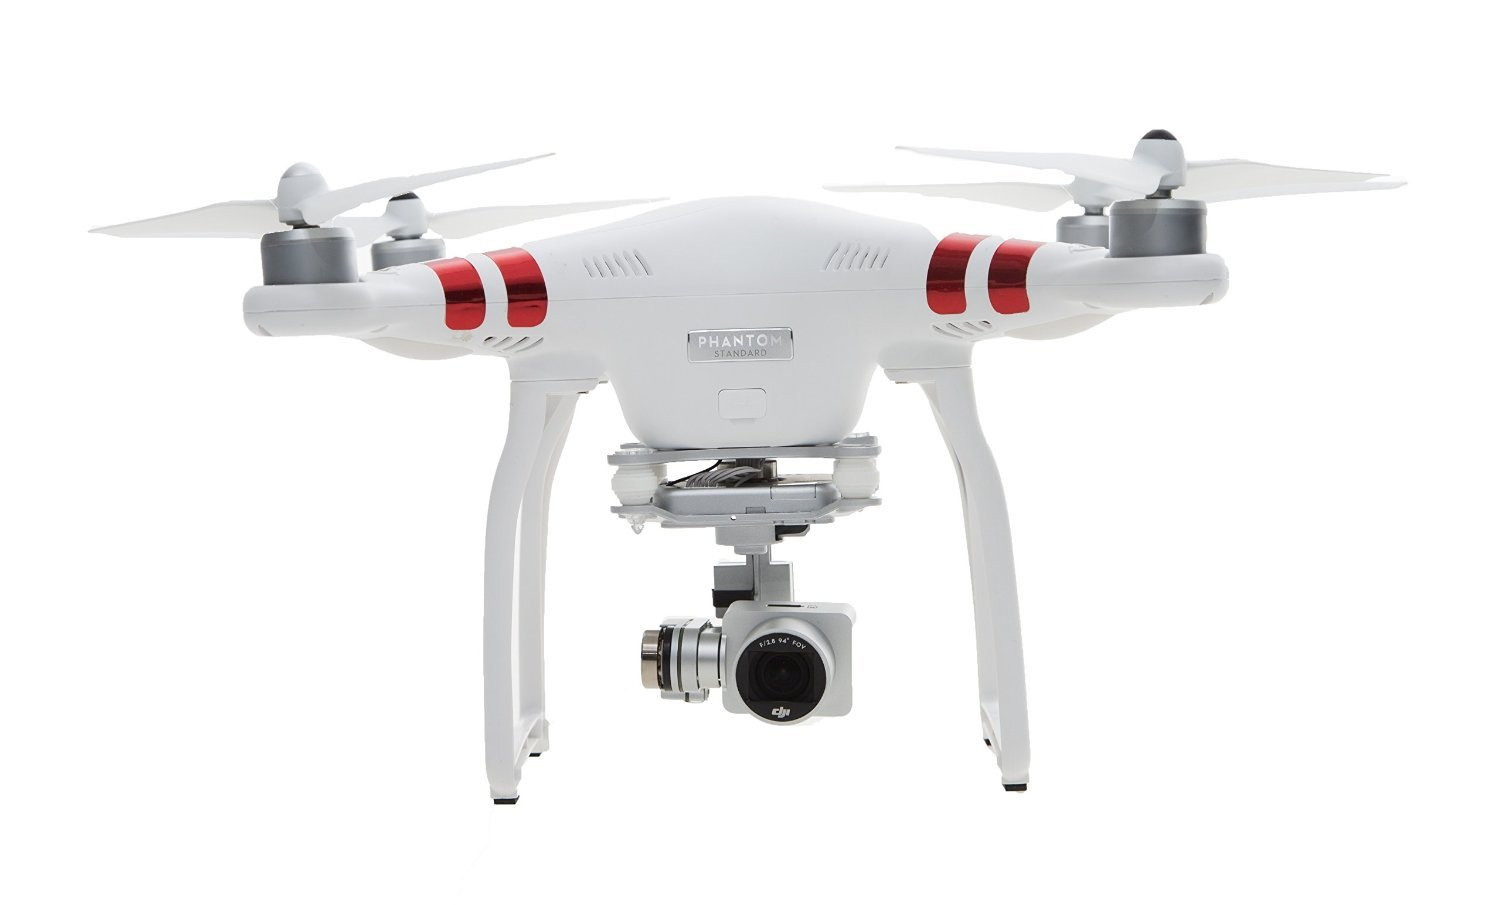 Parent of DJI Phantom 3 Standard Quadcopter